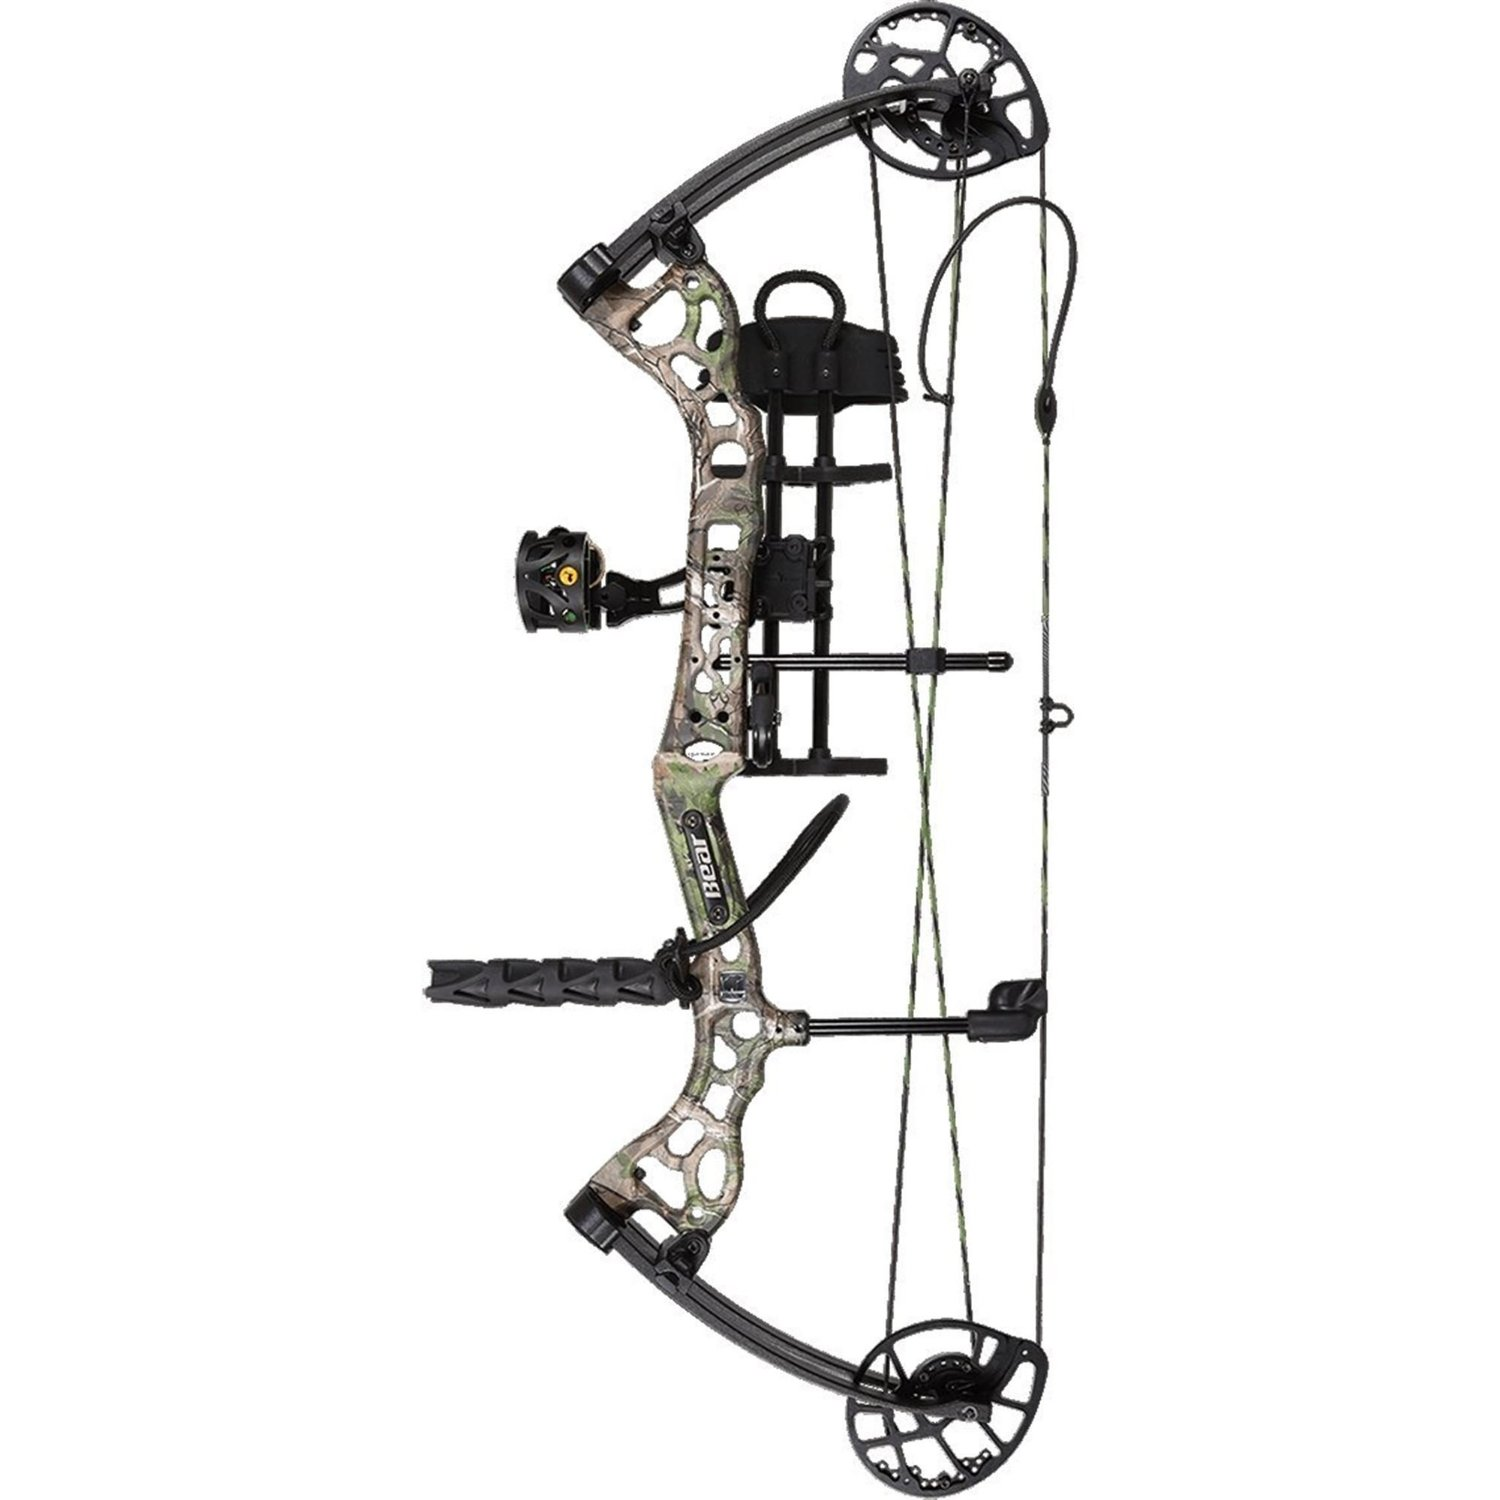 An Excellent Compound Bows With Advanced Grip Design 01